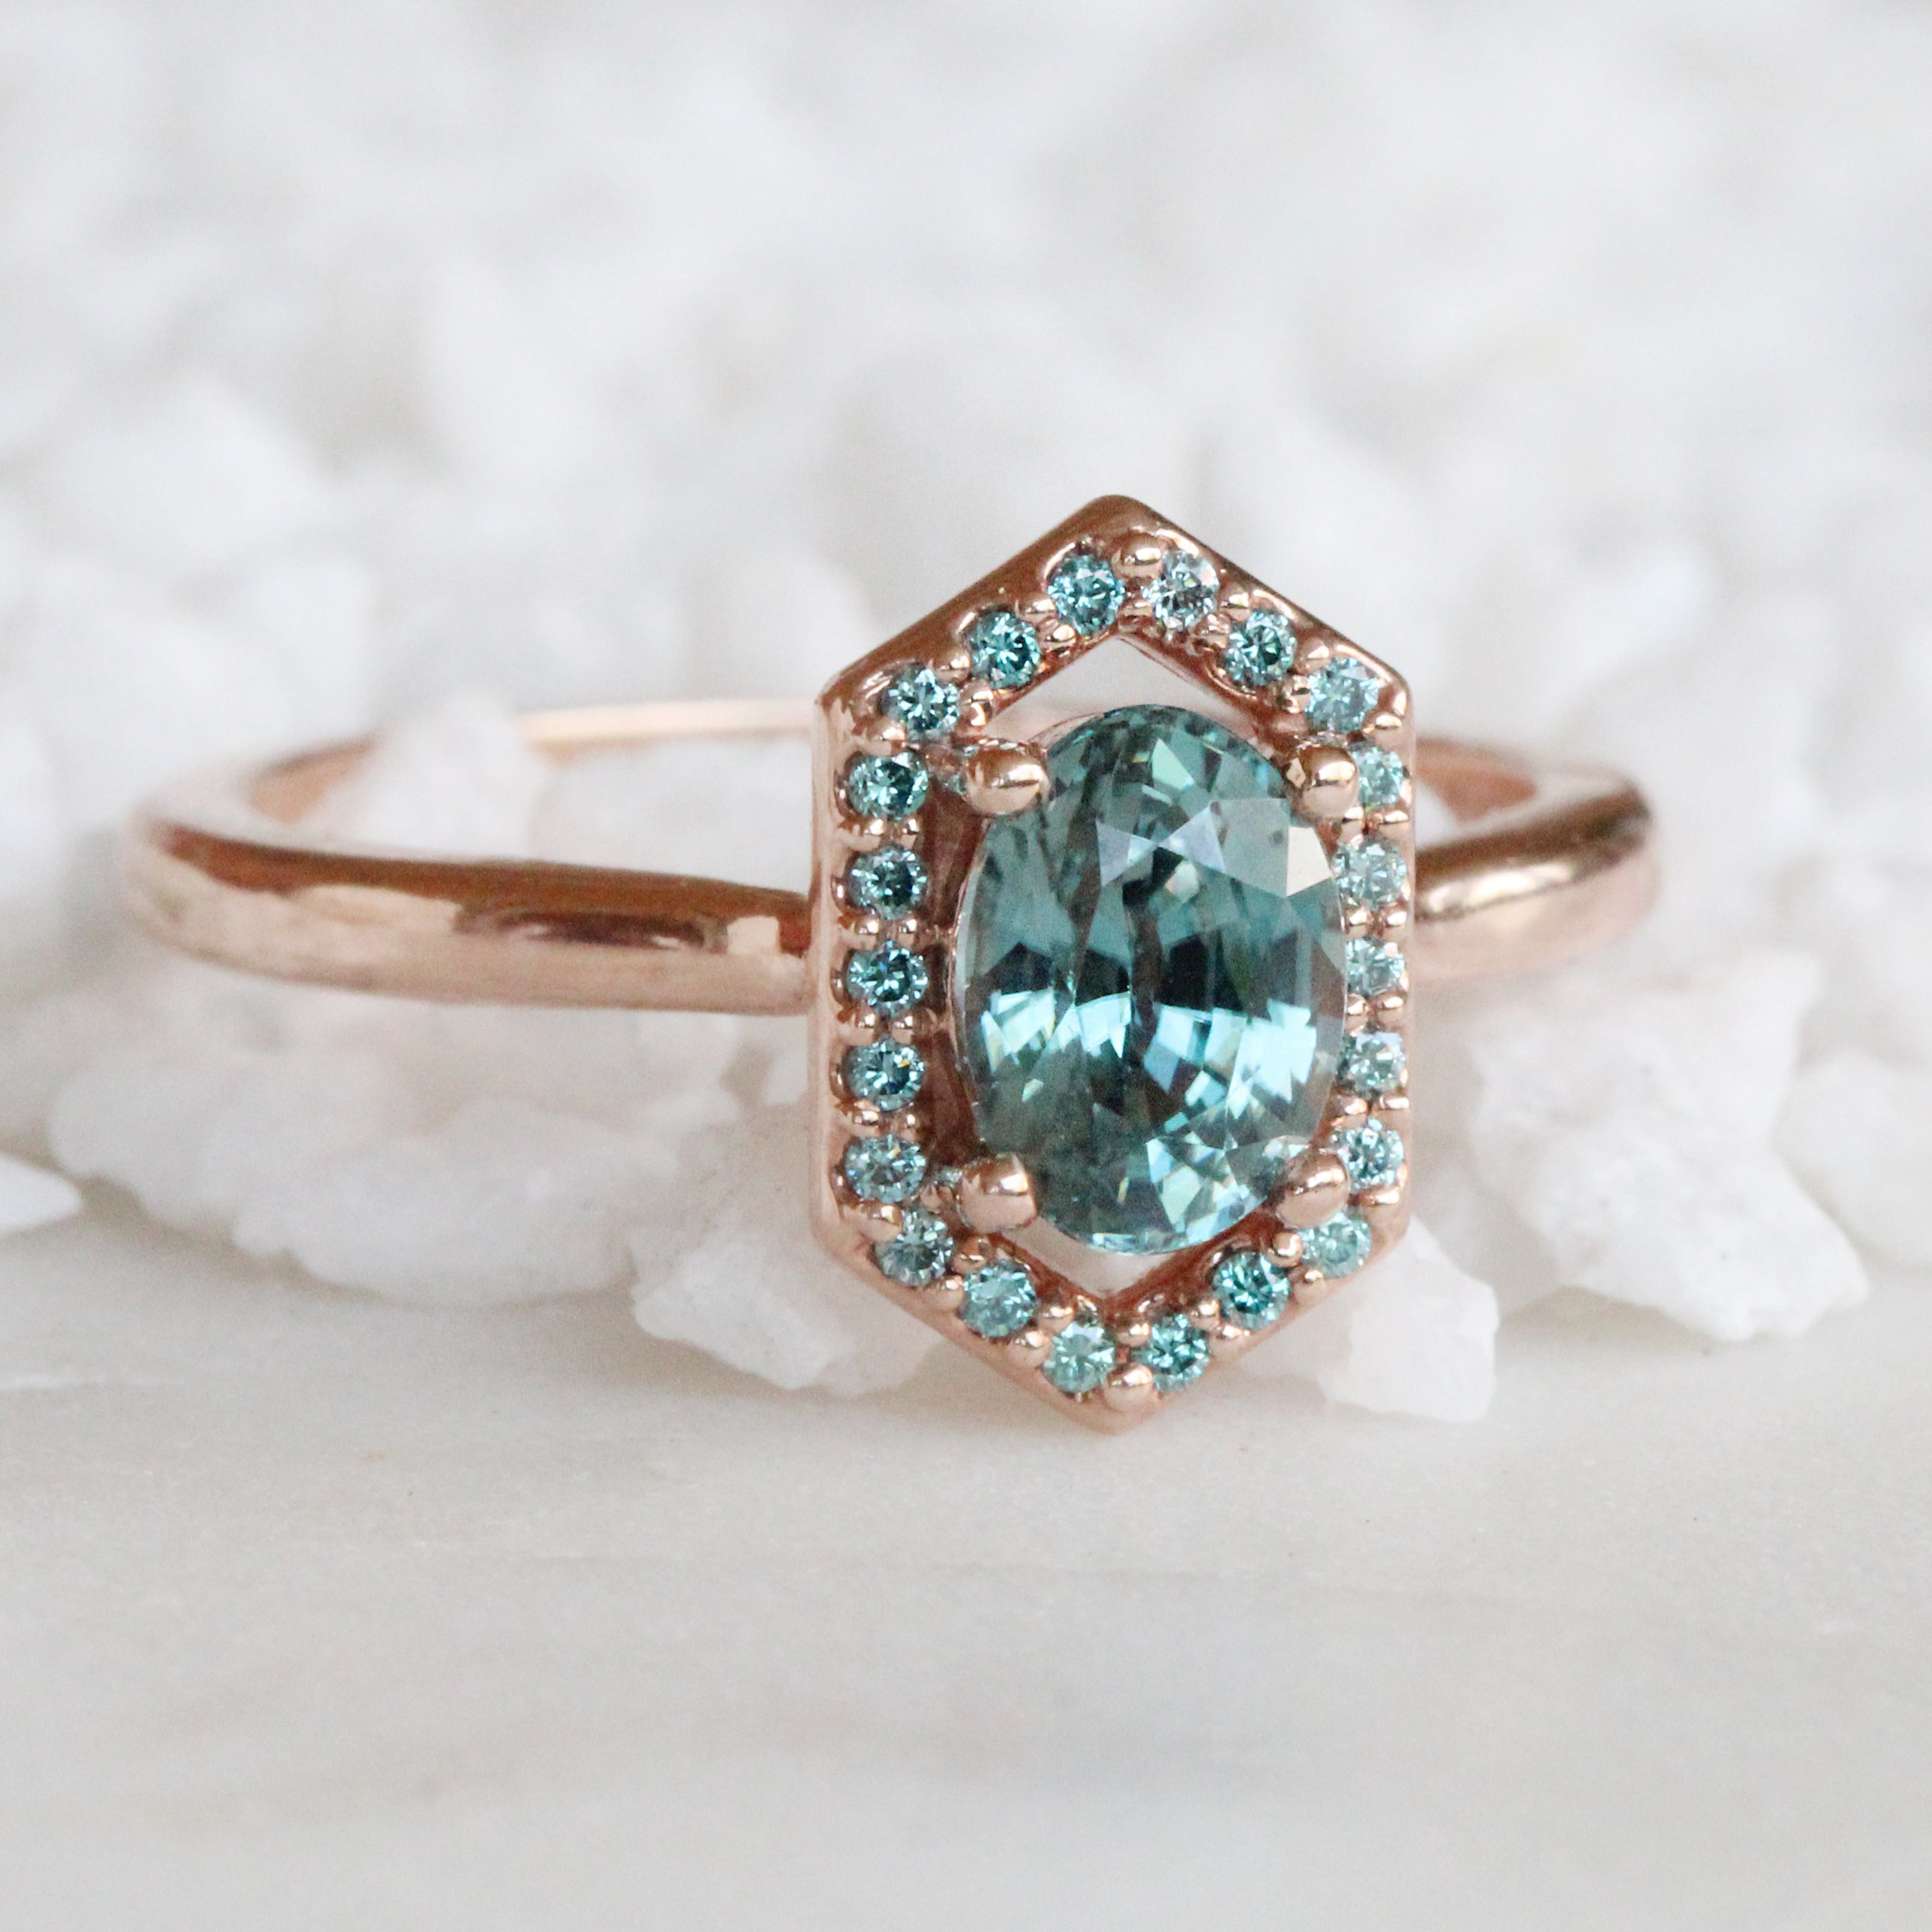 Etta ring with blue zircon and aqua diamonds - 14k gold of choice - made to order - Salt & Pepper Celestial Diamond Engagement Rings and Wedding Bands  by Midwinter Co.